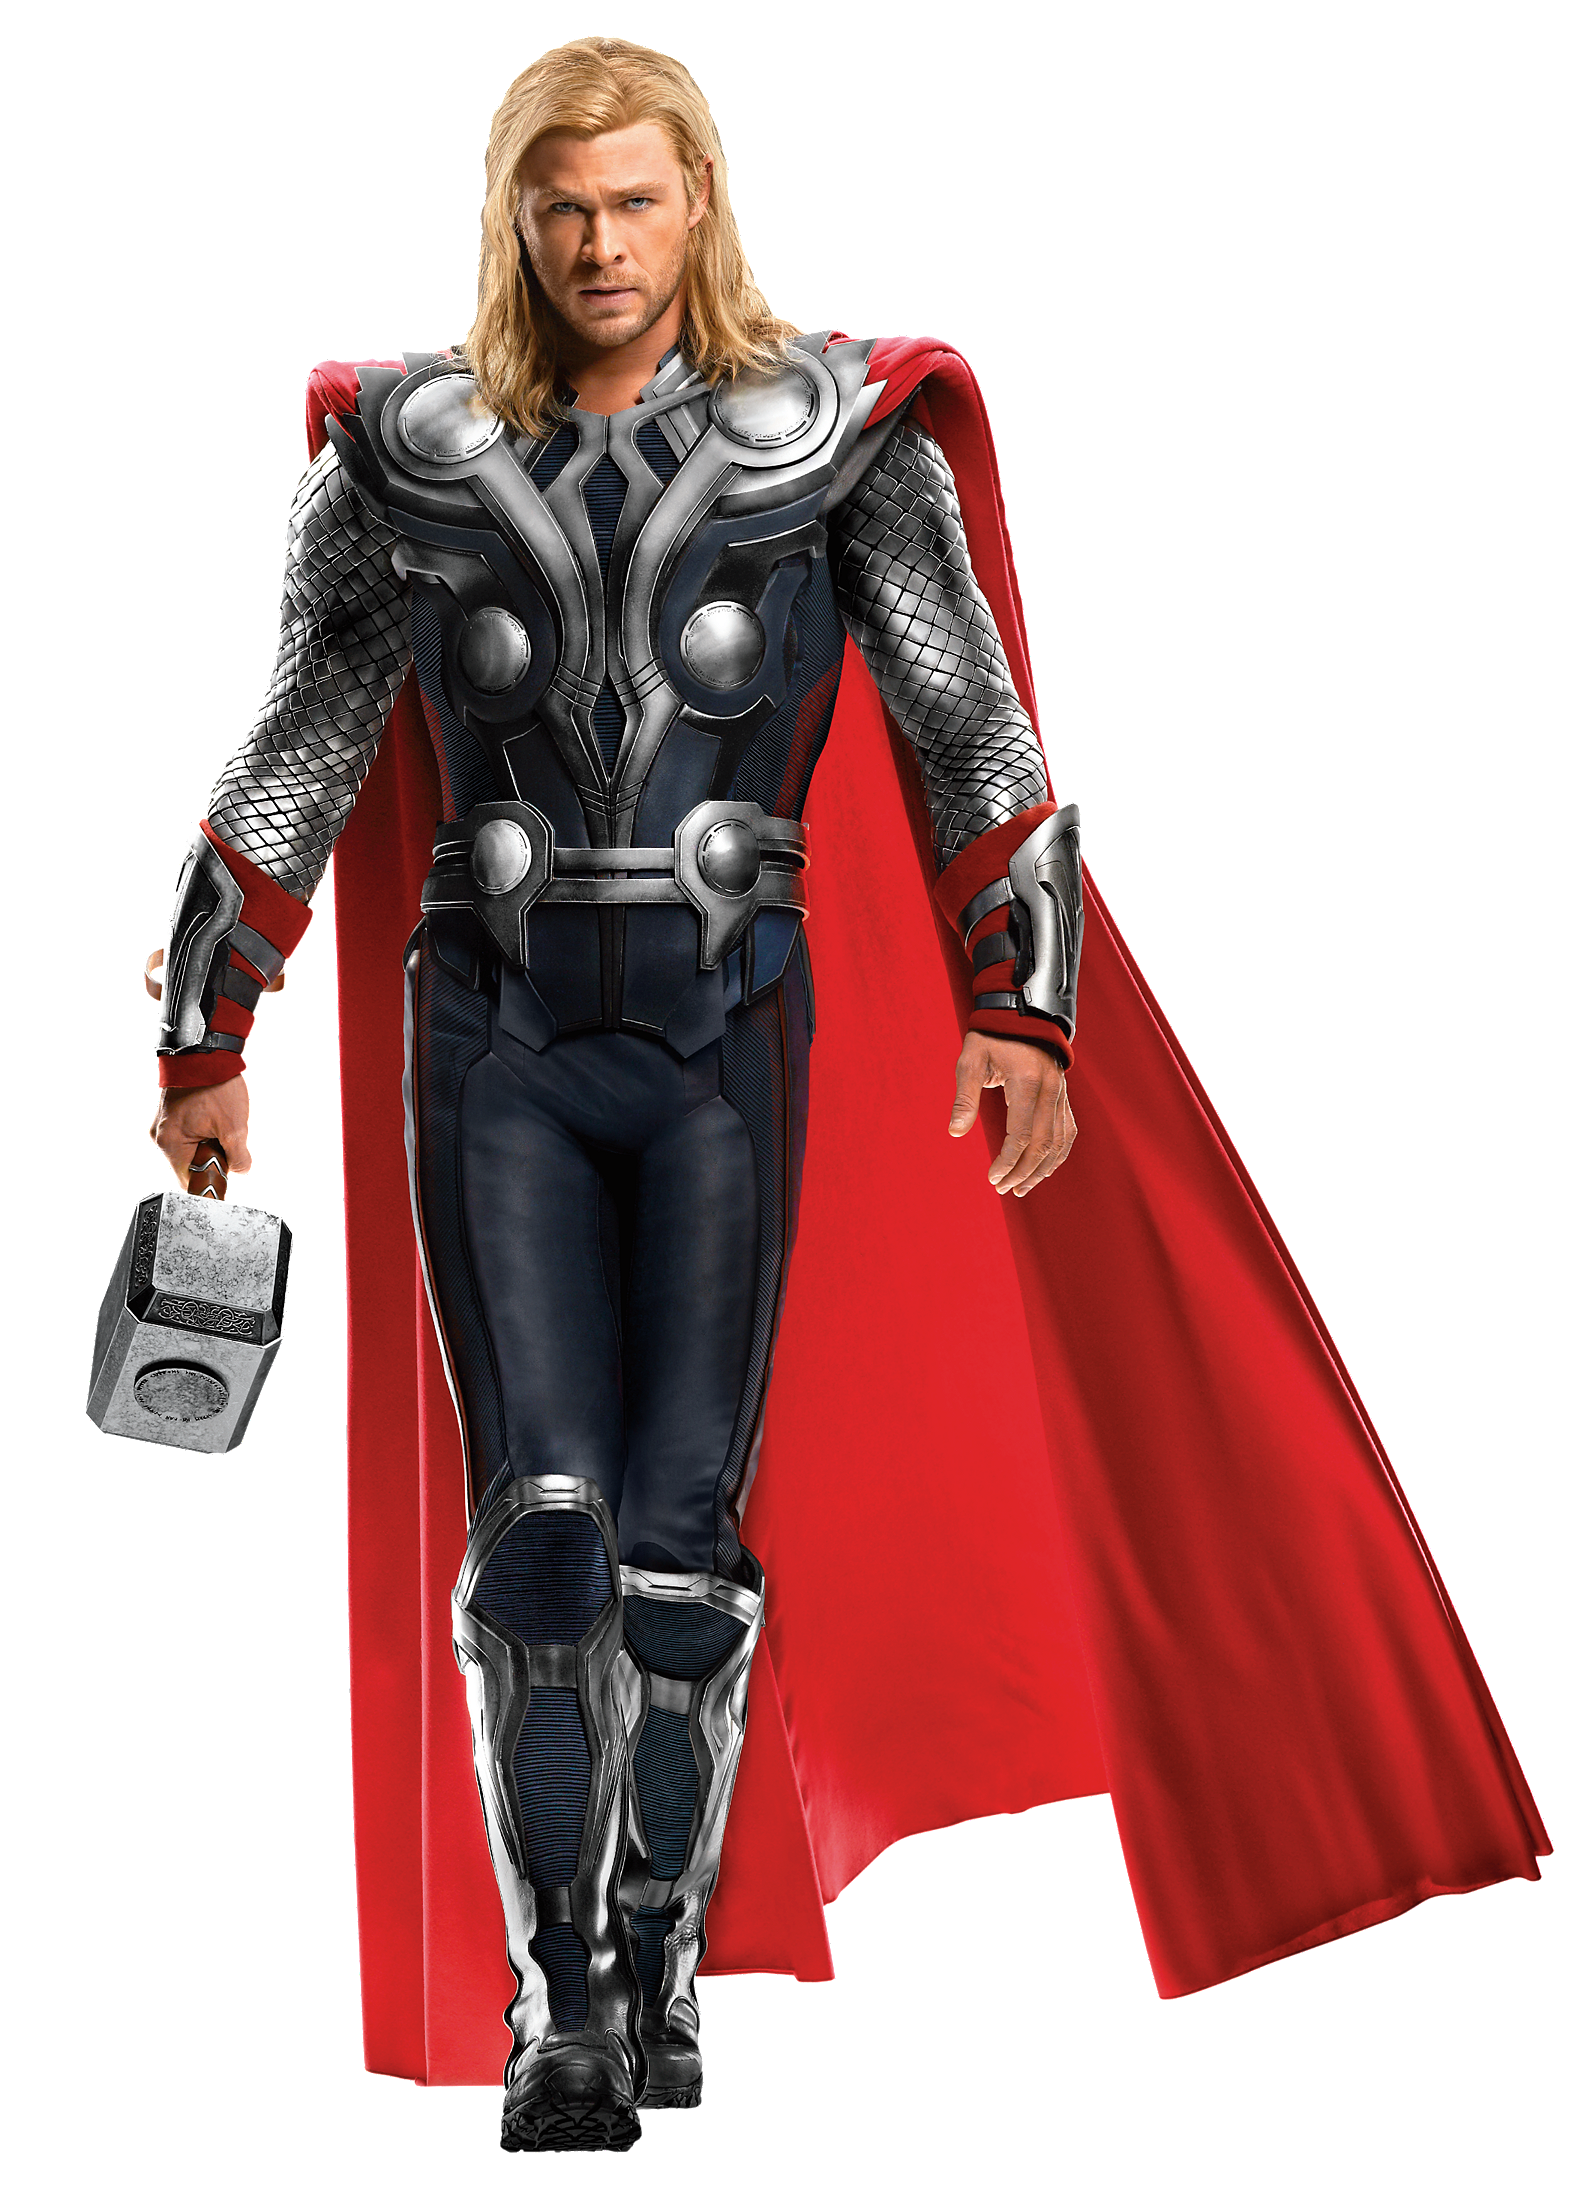 Image - Thor-Avengers.png | Disney Wiki | Fandom powered ...